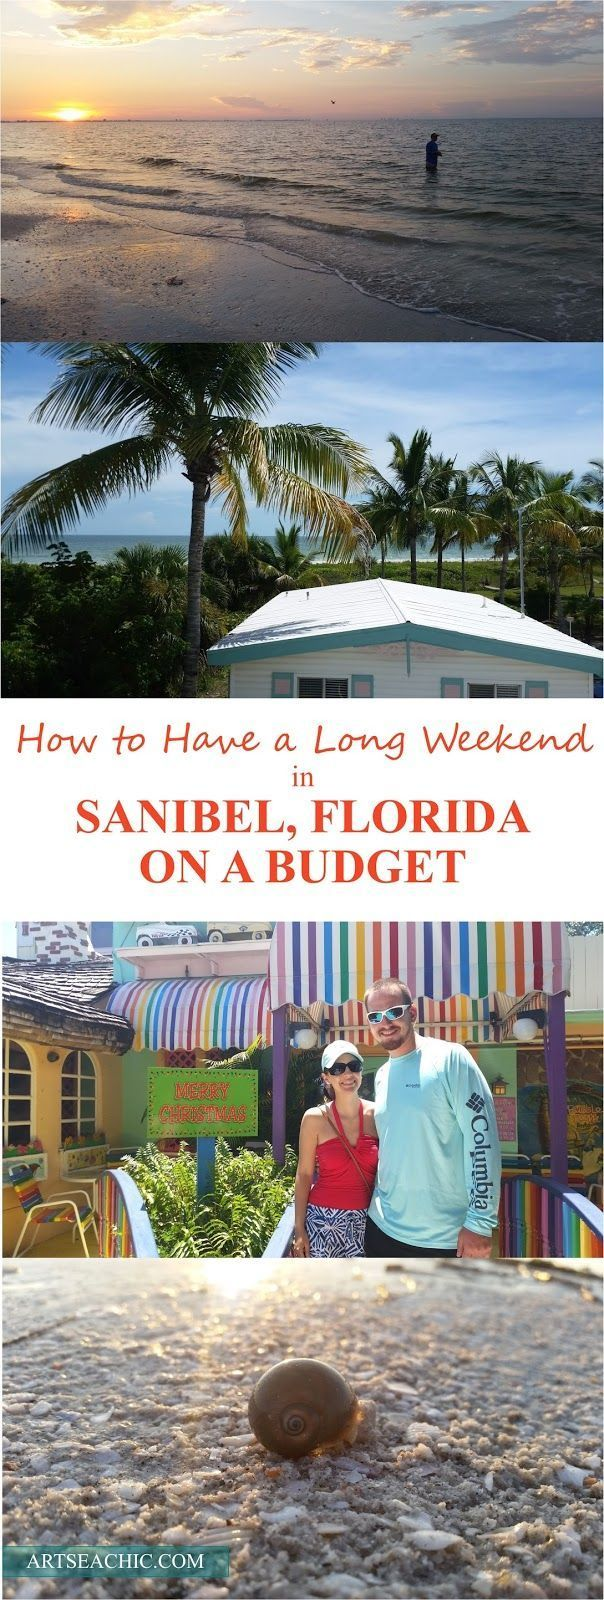 Less Traveled Island Getaways – How to Have a Long Weekend in Sanibel, Florida o…